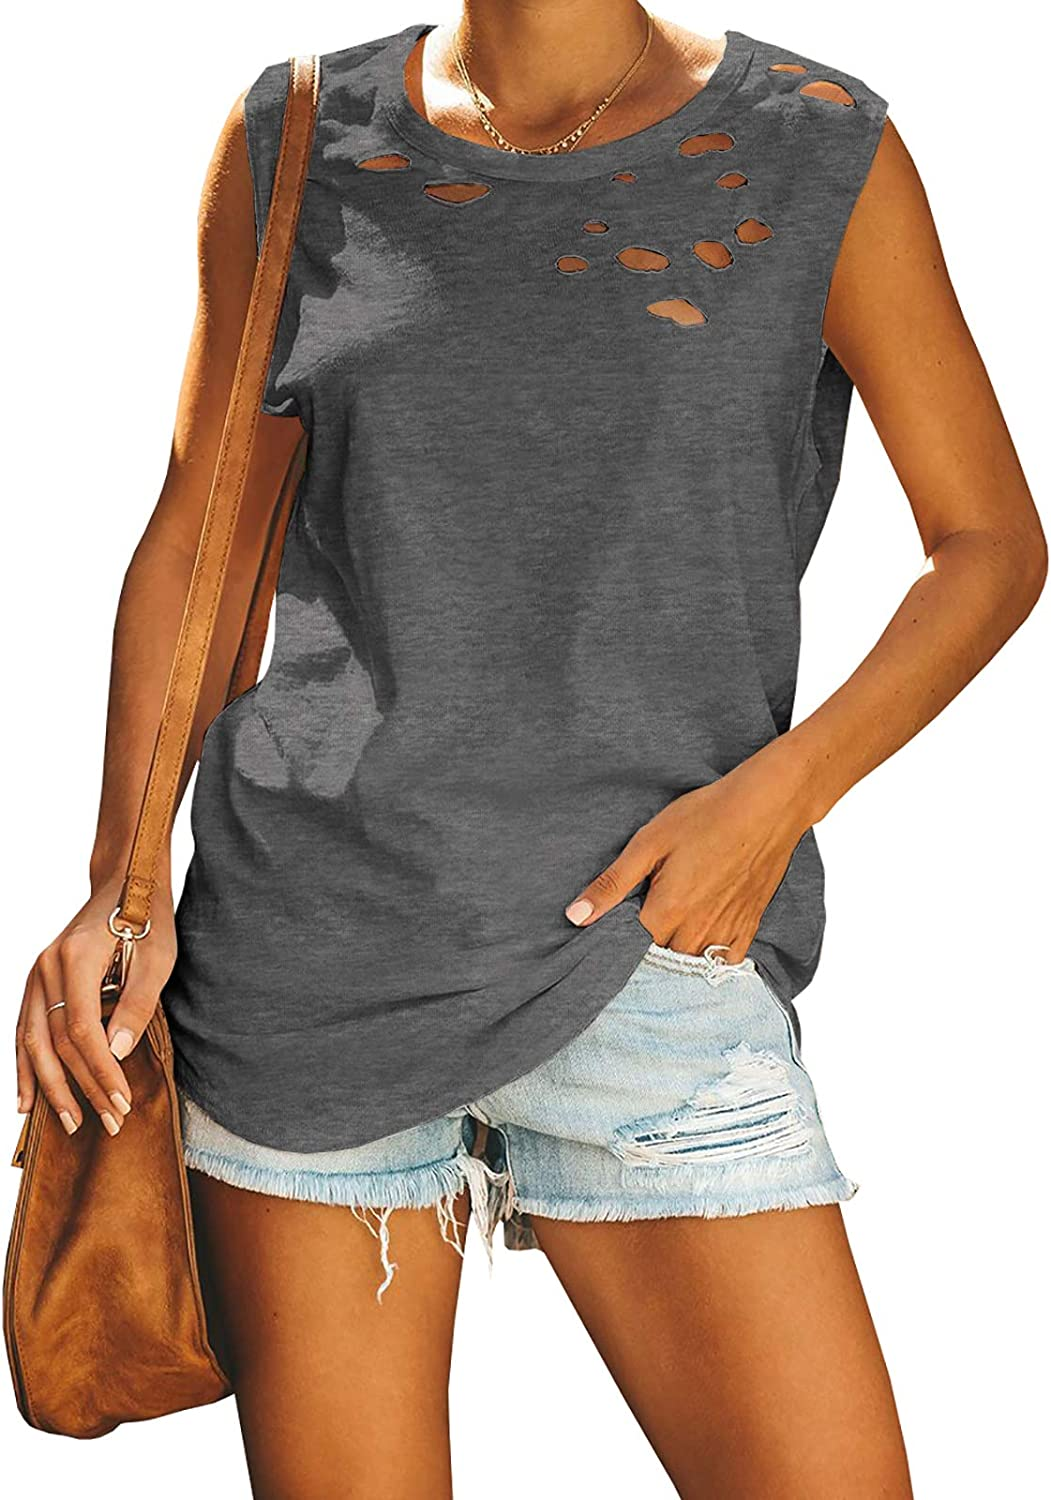 Jeanewpole1 Womens Ripped Casual Tank Tops Sleeveless Crew Neck Loose Summer Shirts Blouses